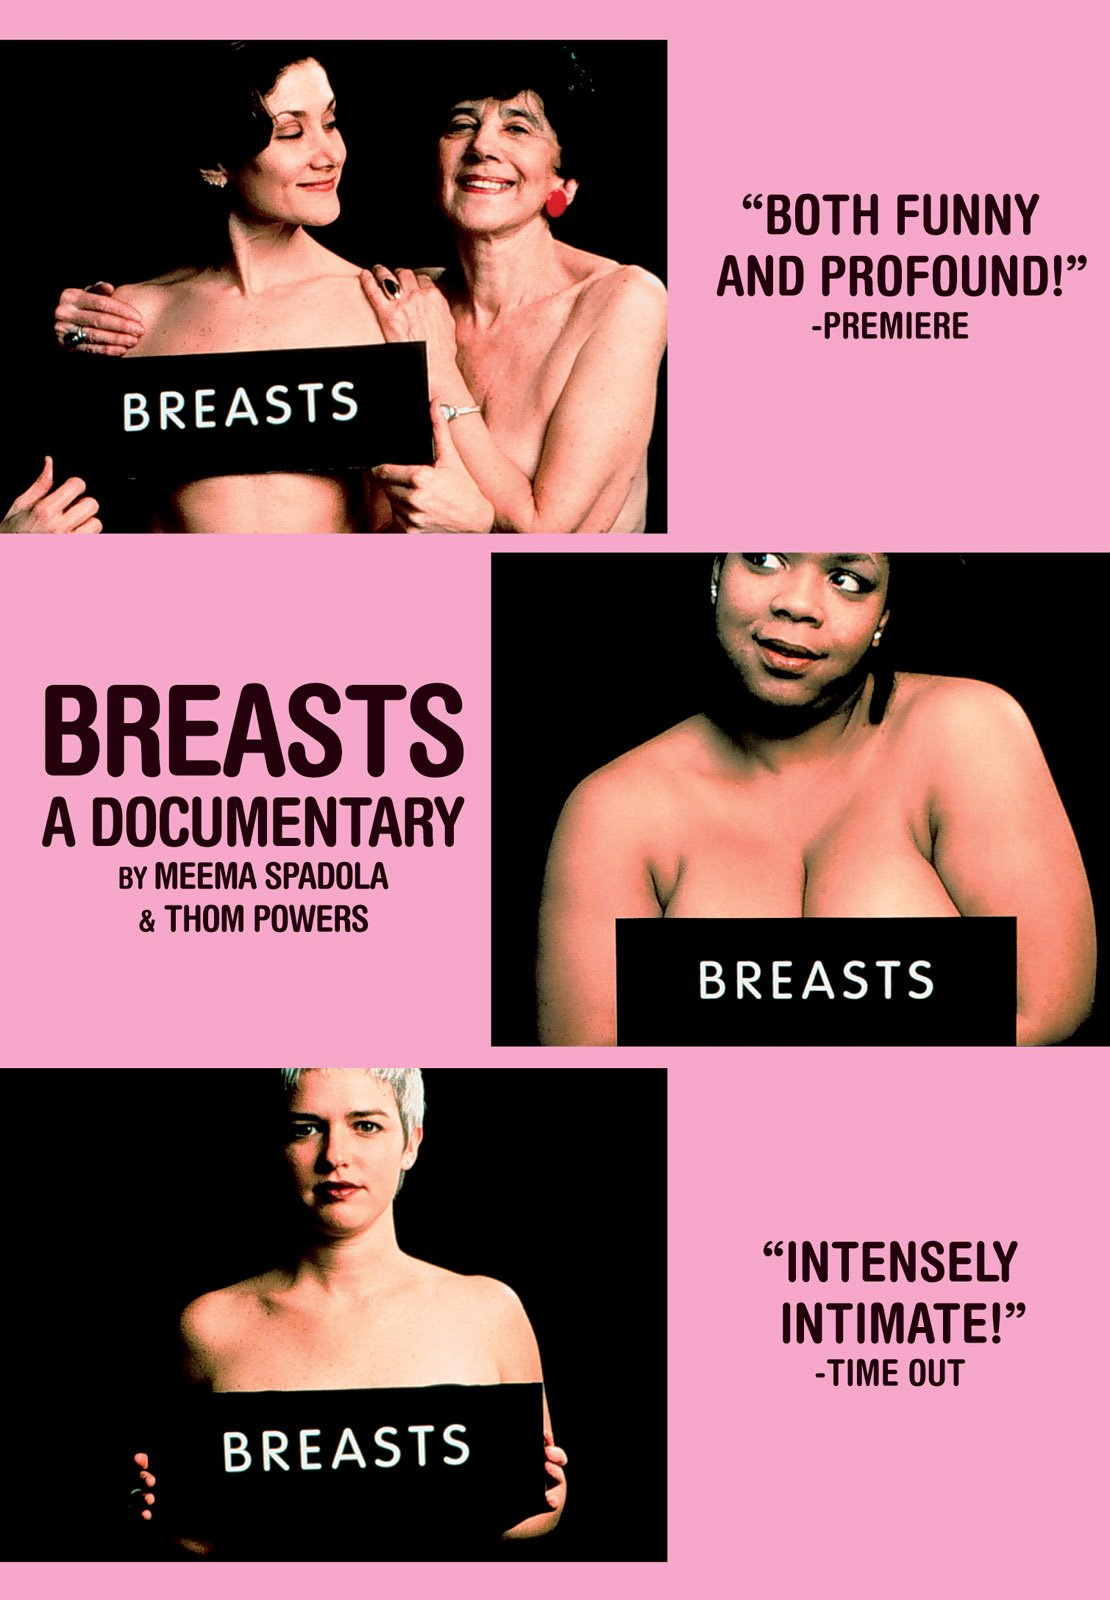 Are certainly big boob documentary are mistaken